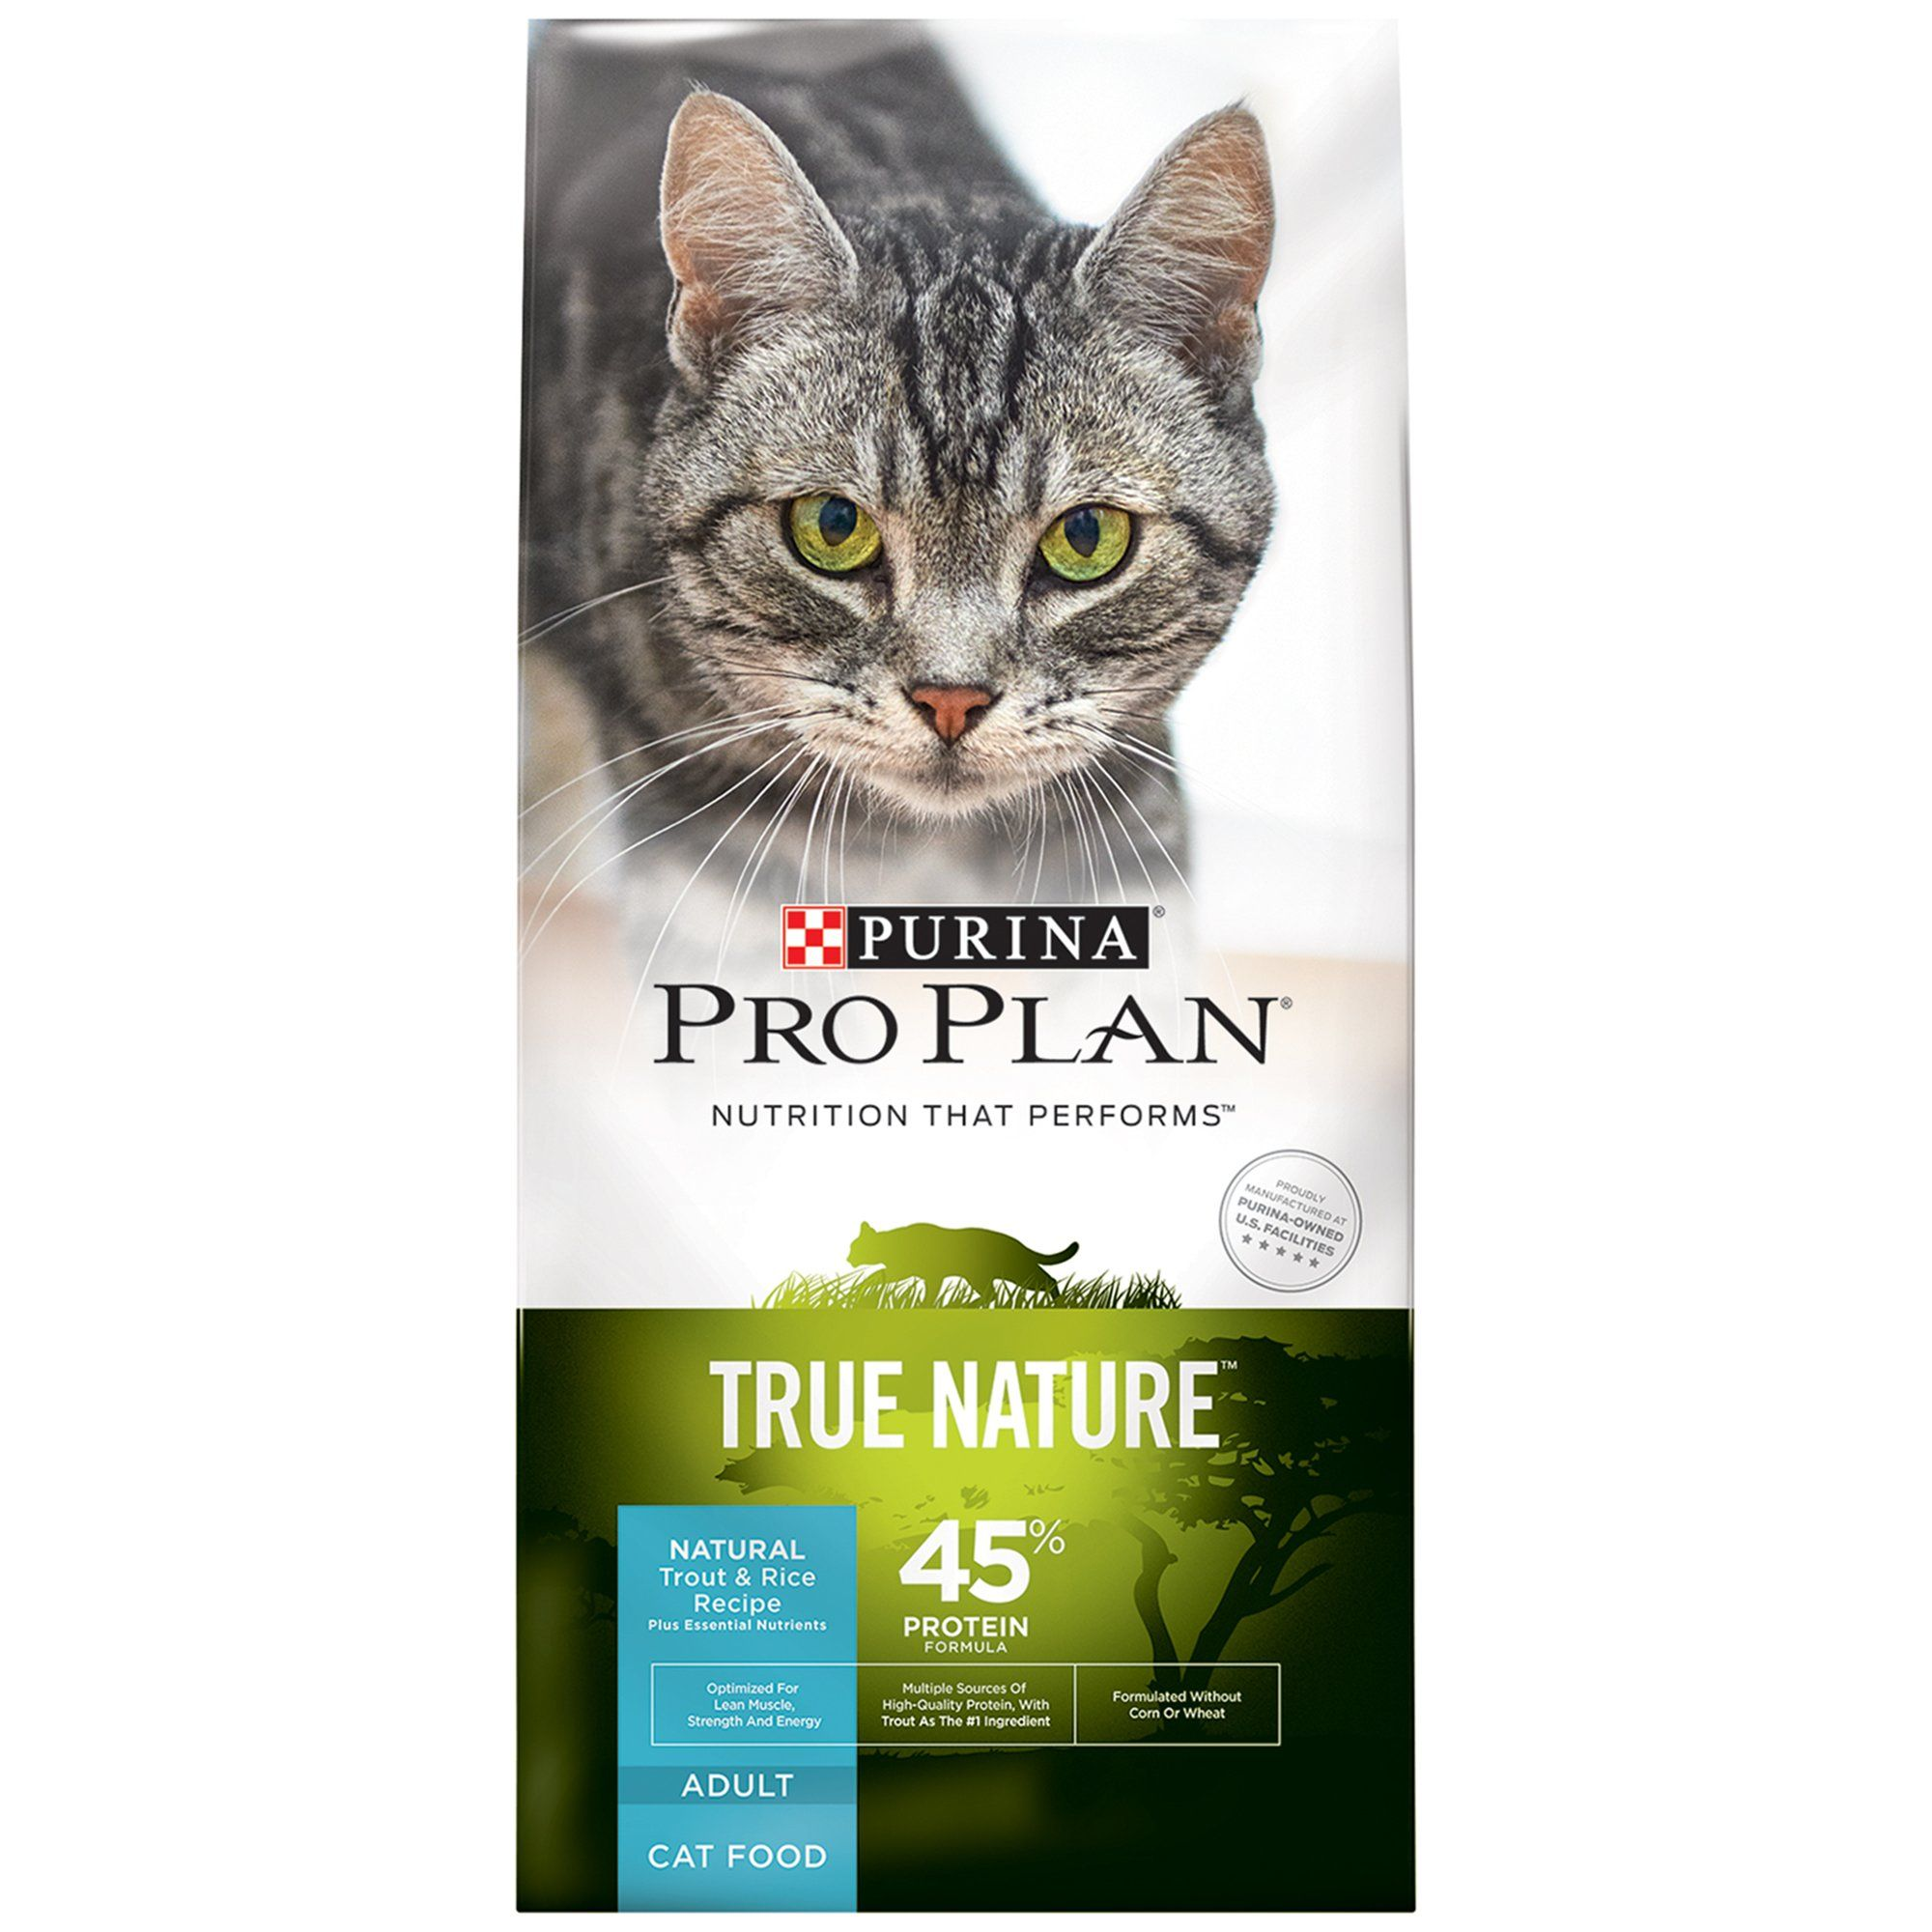 Pro Plan True Nature Trout Rice Adult Cat Food 6 Lbs Purina